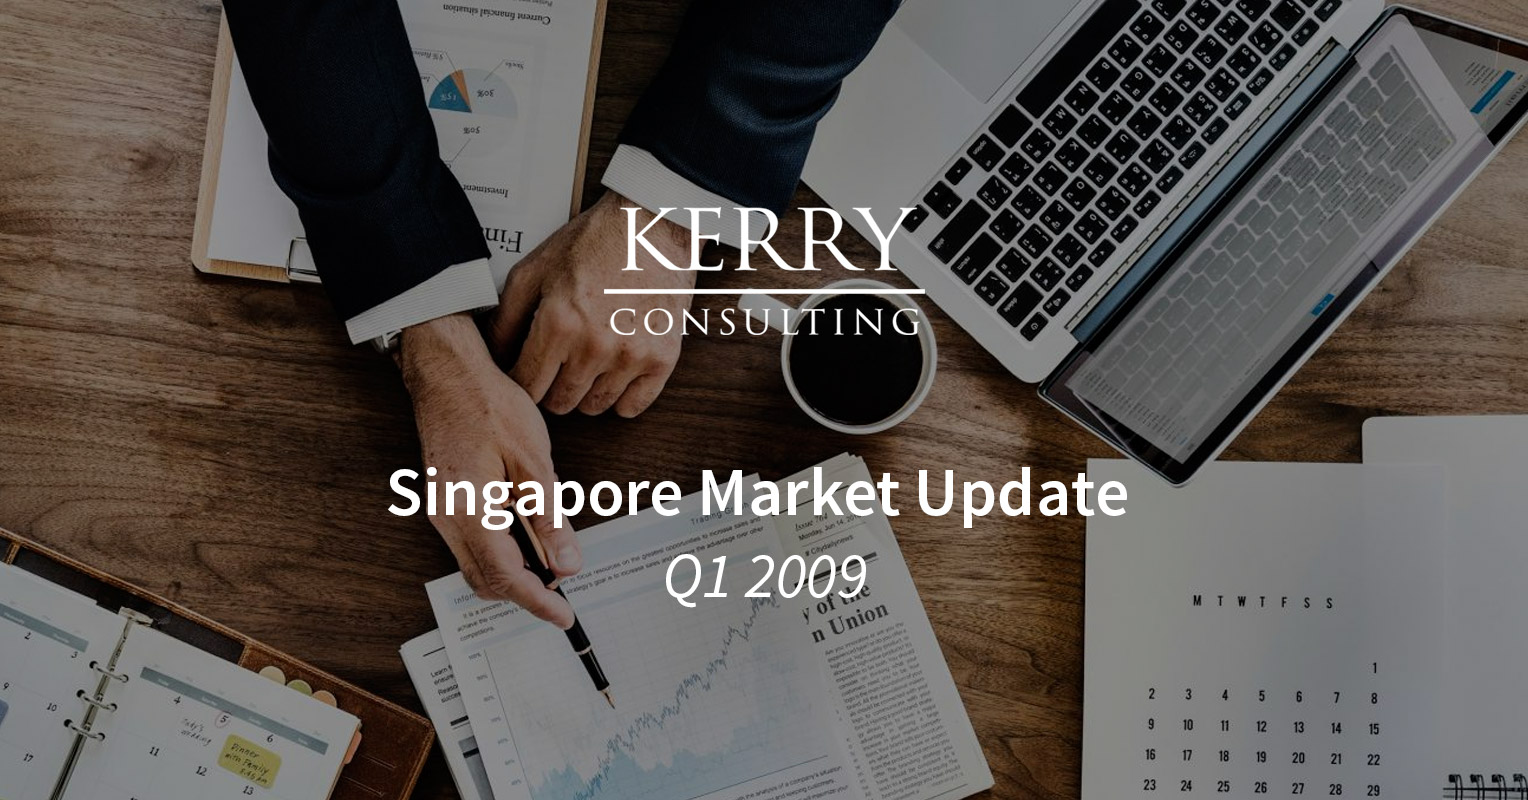 Kerry's Singapore Market Update Q1 2009